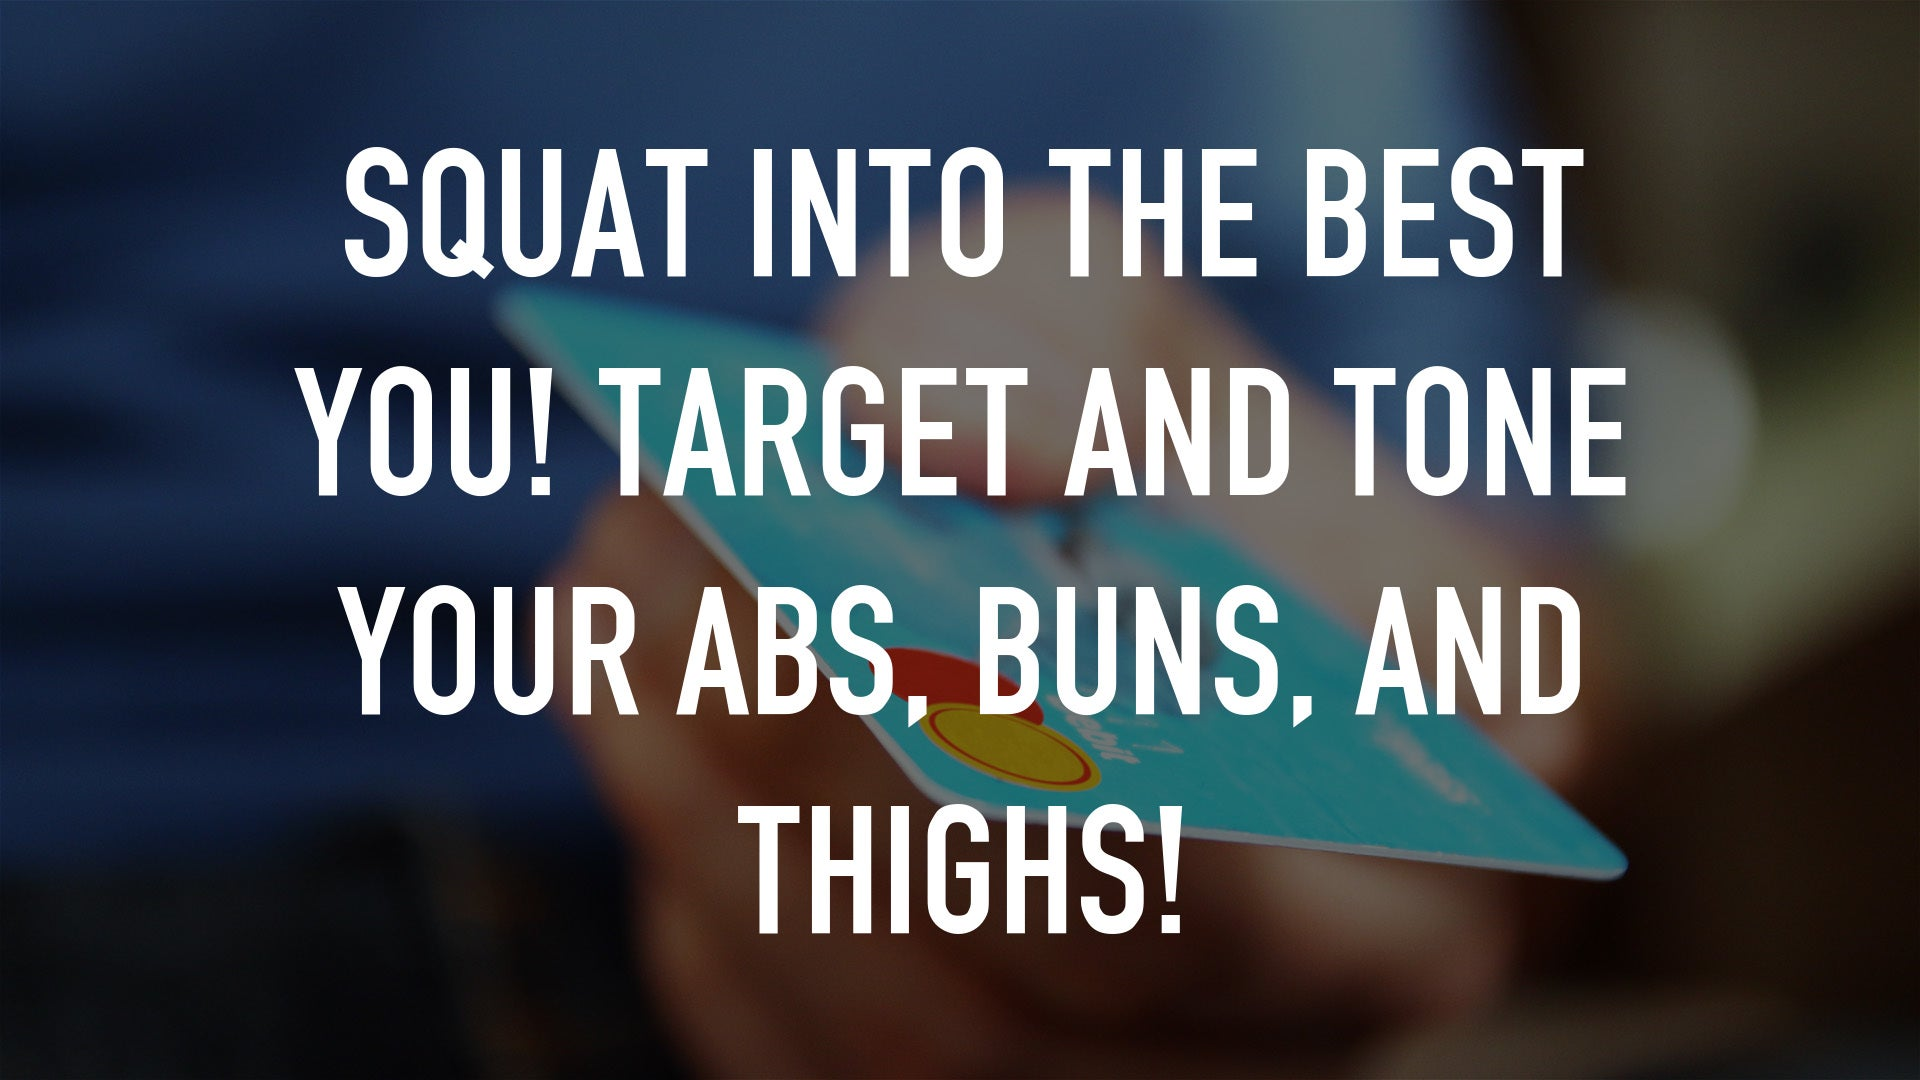 Squat into the best you! Target and Tone your abs, buns, and thighs!